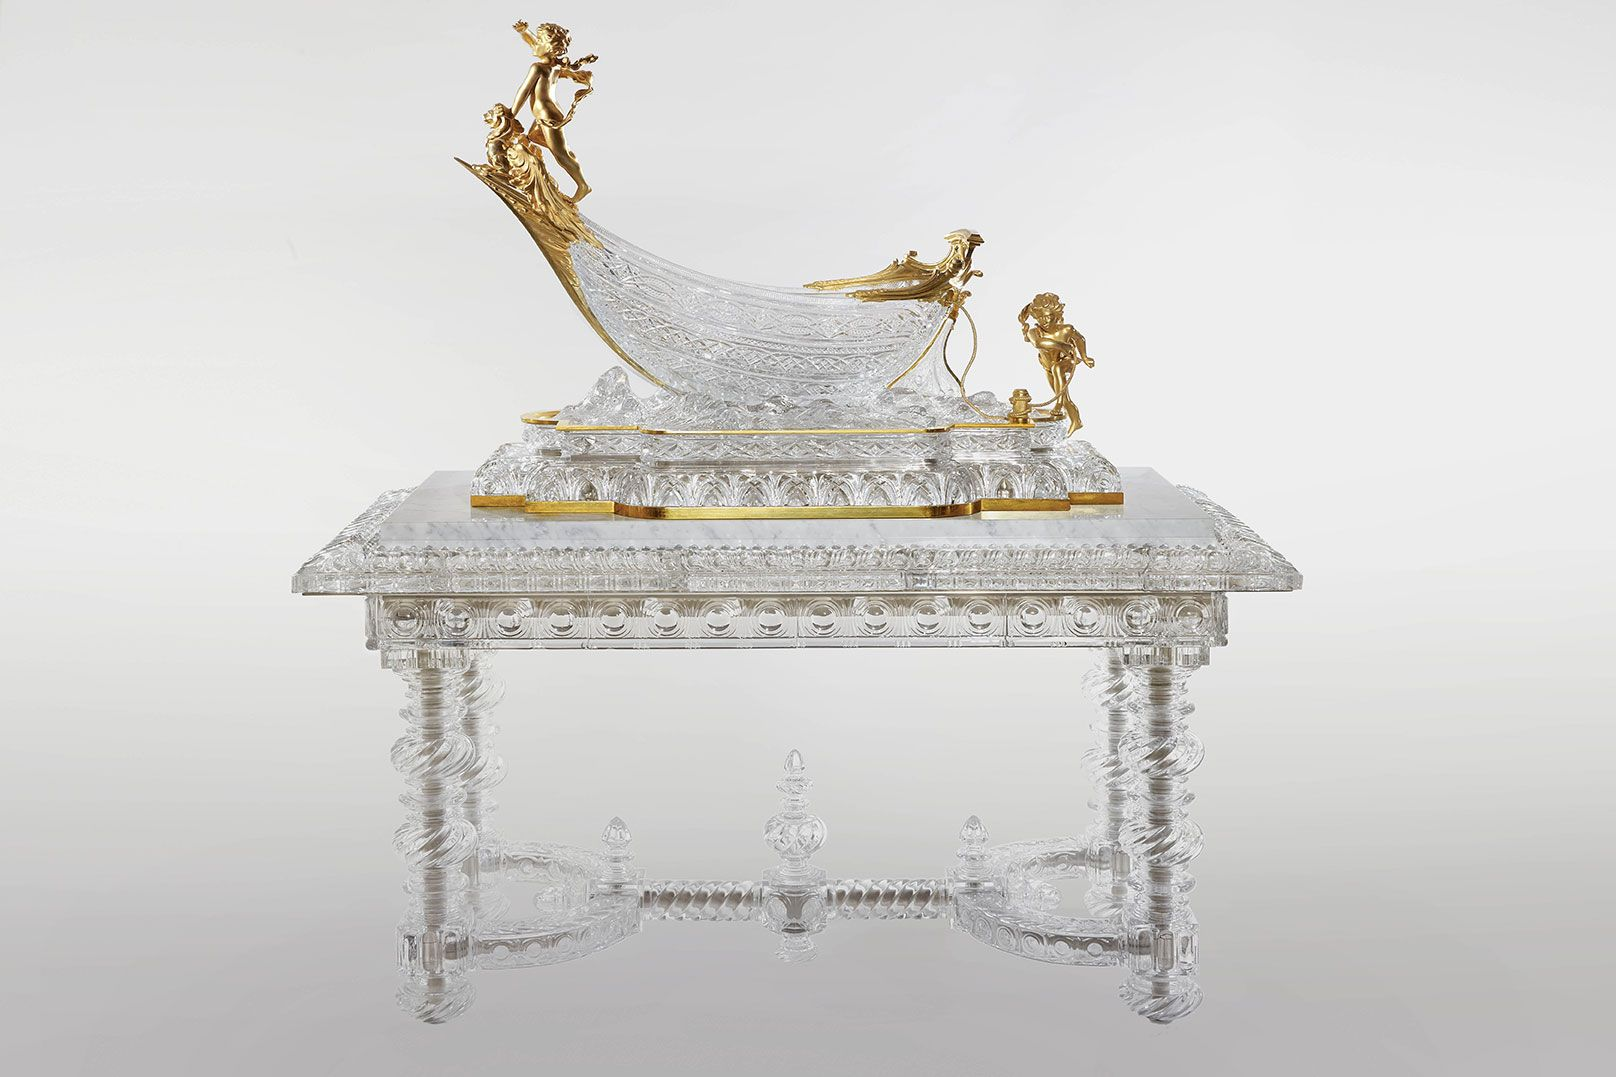 BACCARAT, A COLLECTOR'S HOUSE. La mostra